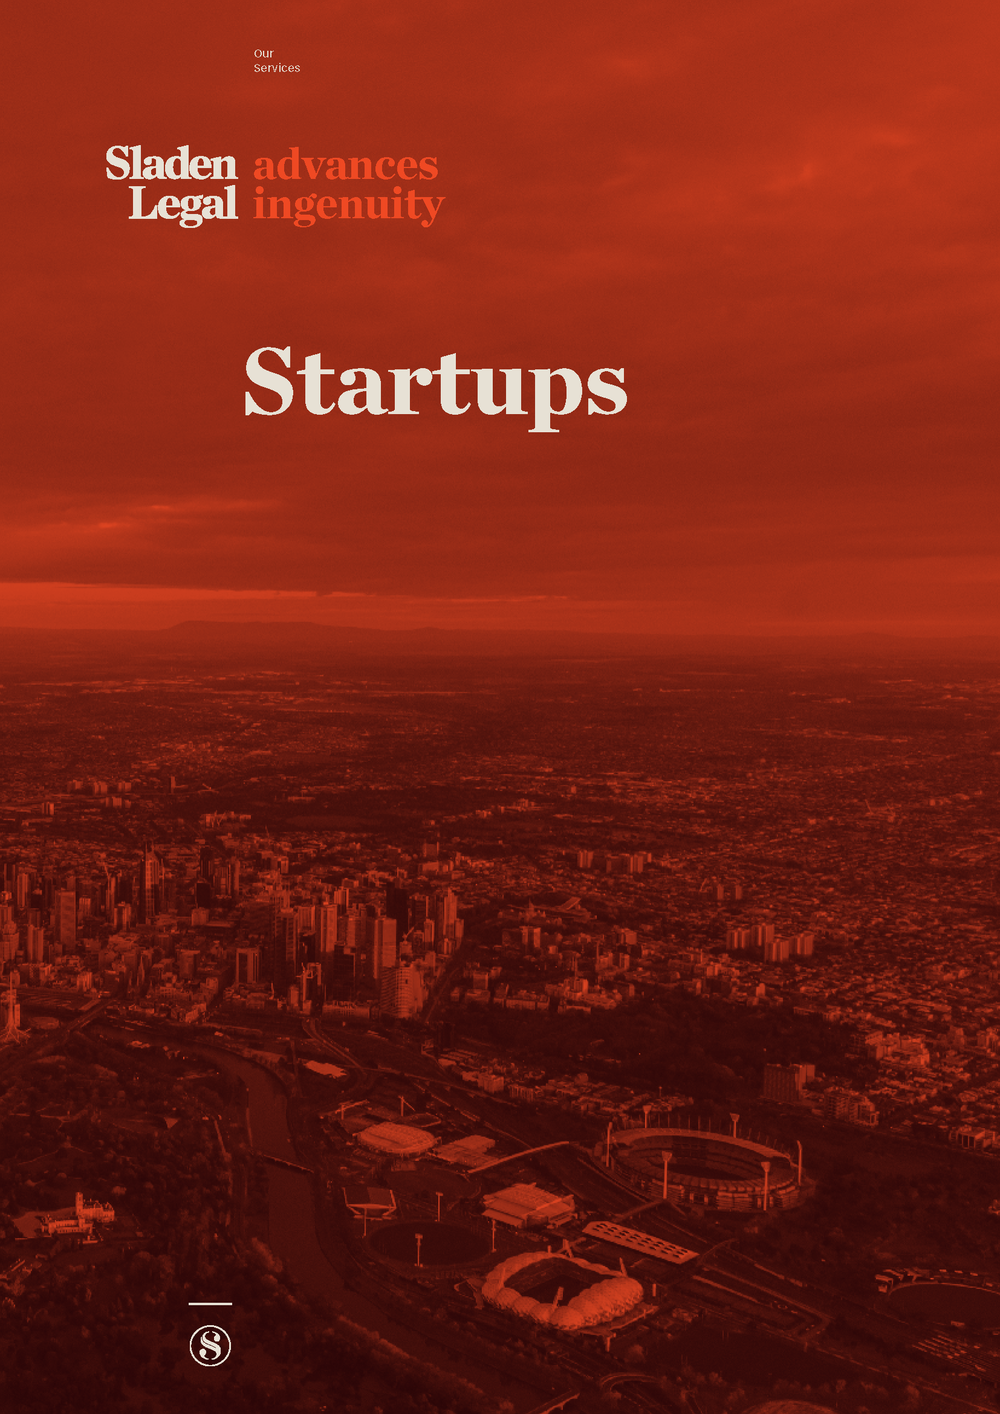 If you are a Startup,then we are for you. For more info download our Startups brochure -